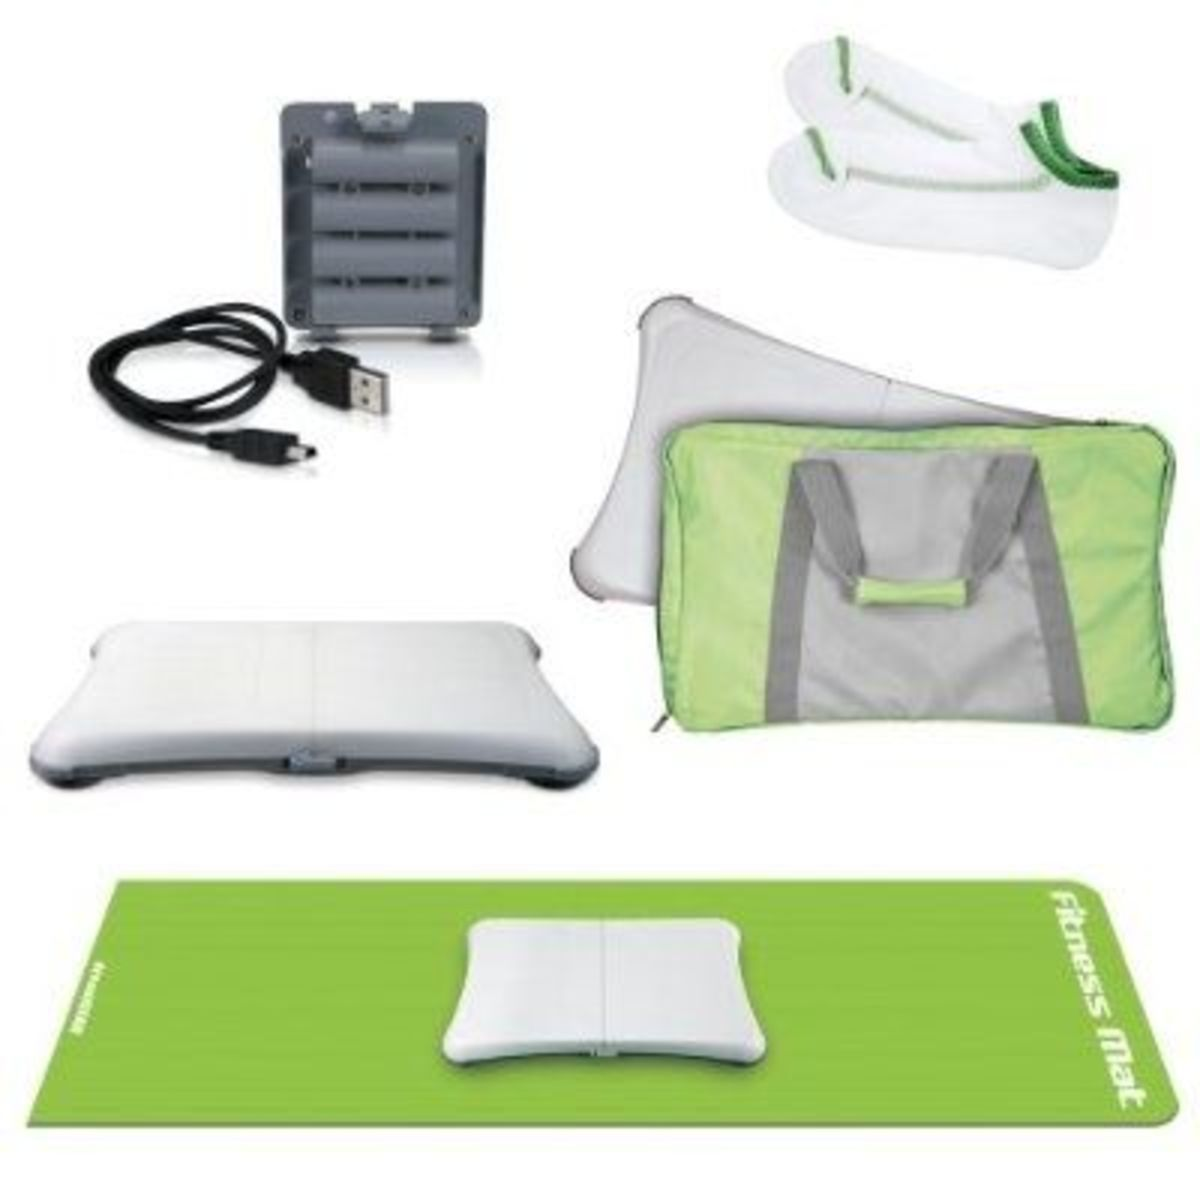 The 5 in 1 Fitness Bundle